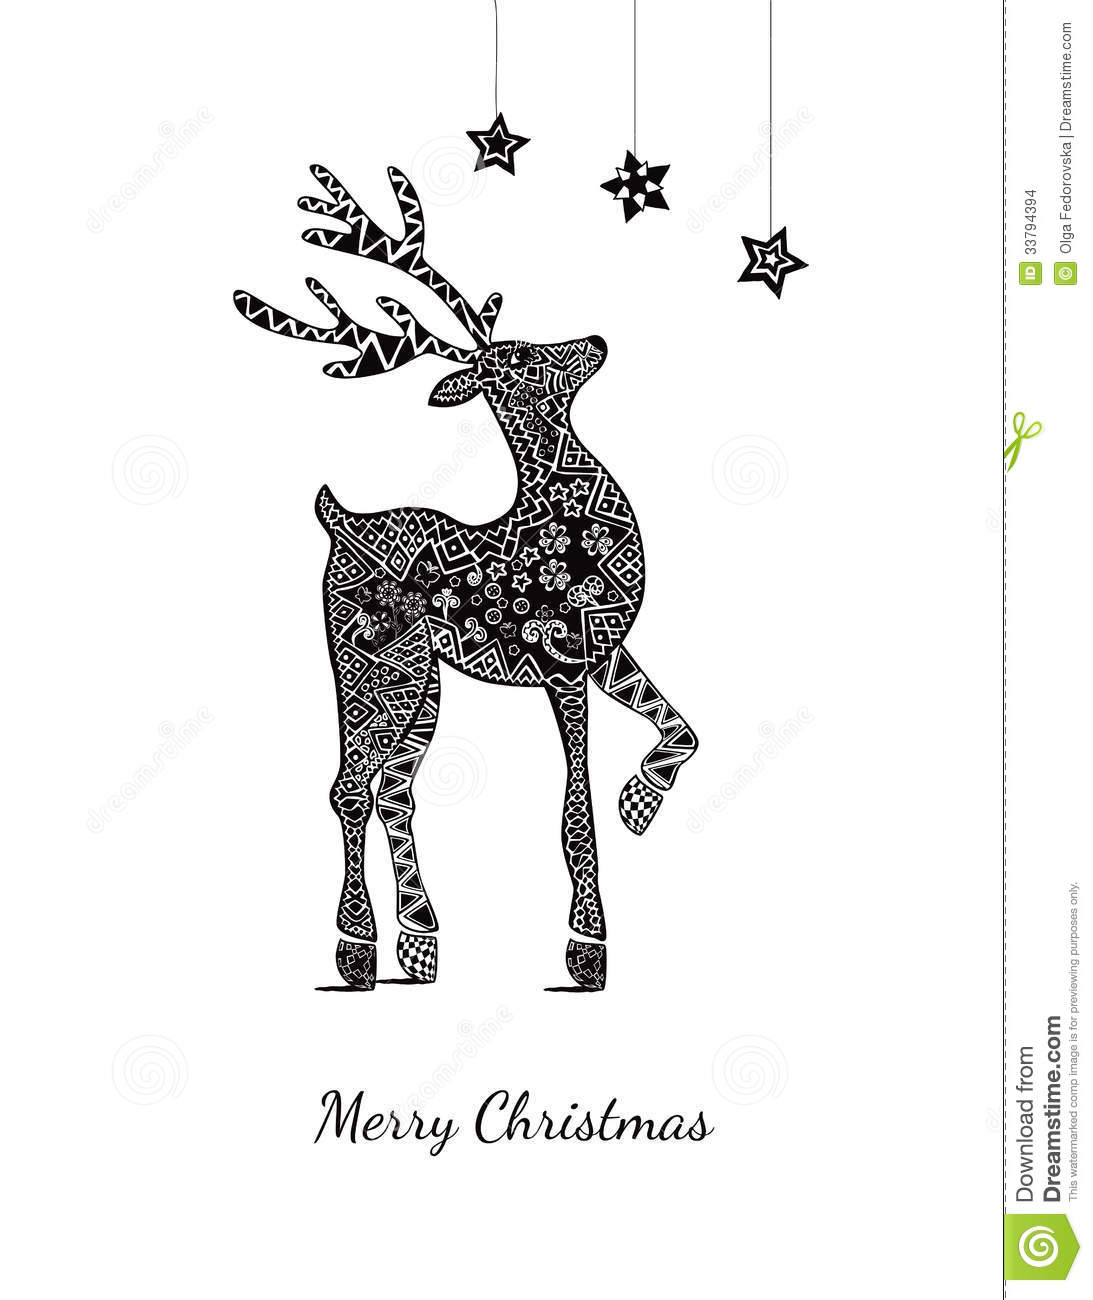 download christmas card with deer on white stock vector illustration of floral card - Deer Christmas Cards